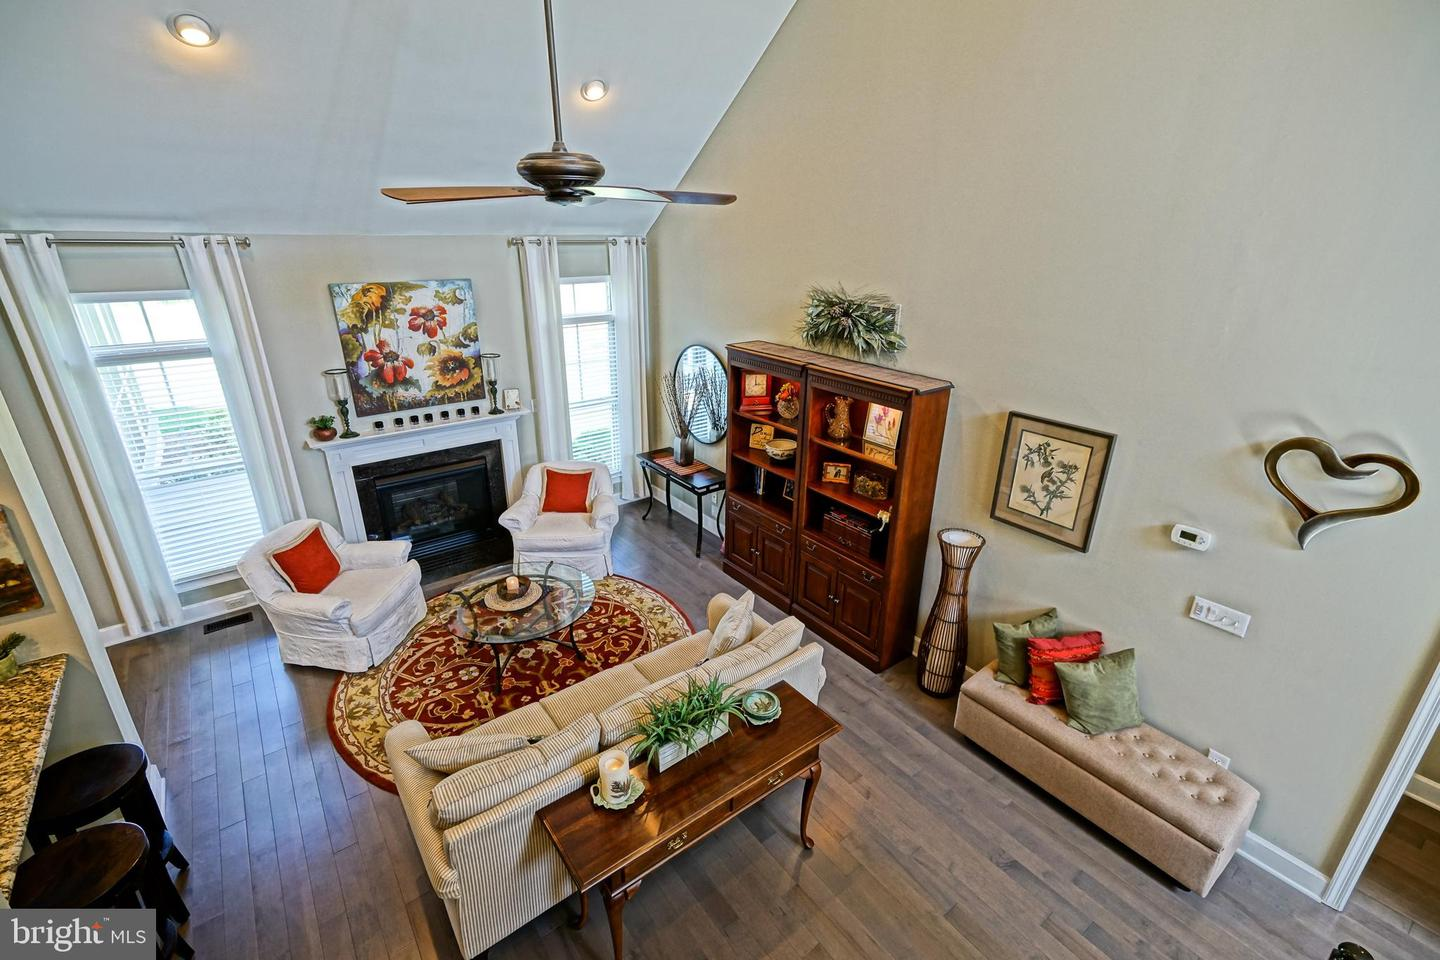 DESU139128-301667381689-2019-08-05-10-43-56 35222 Overfalls Dr N | Lewes, DE Real Estate For Sale | MLS# Desu139128  - Lee Ann Group